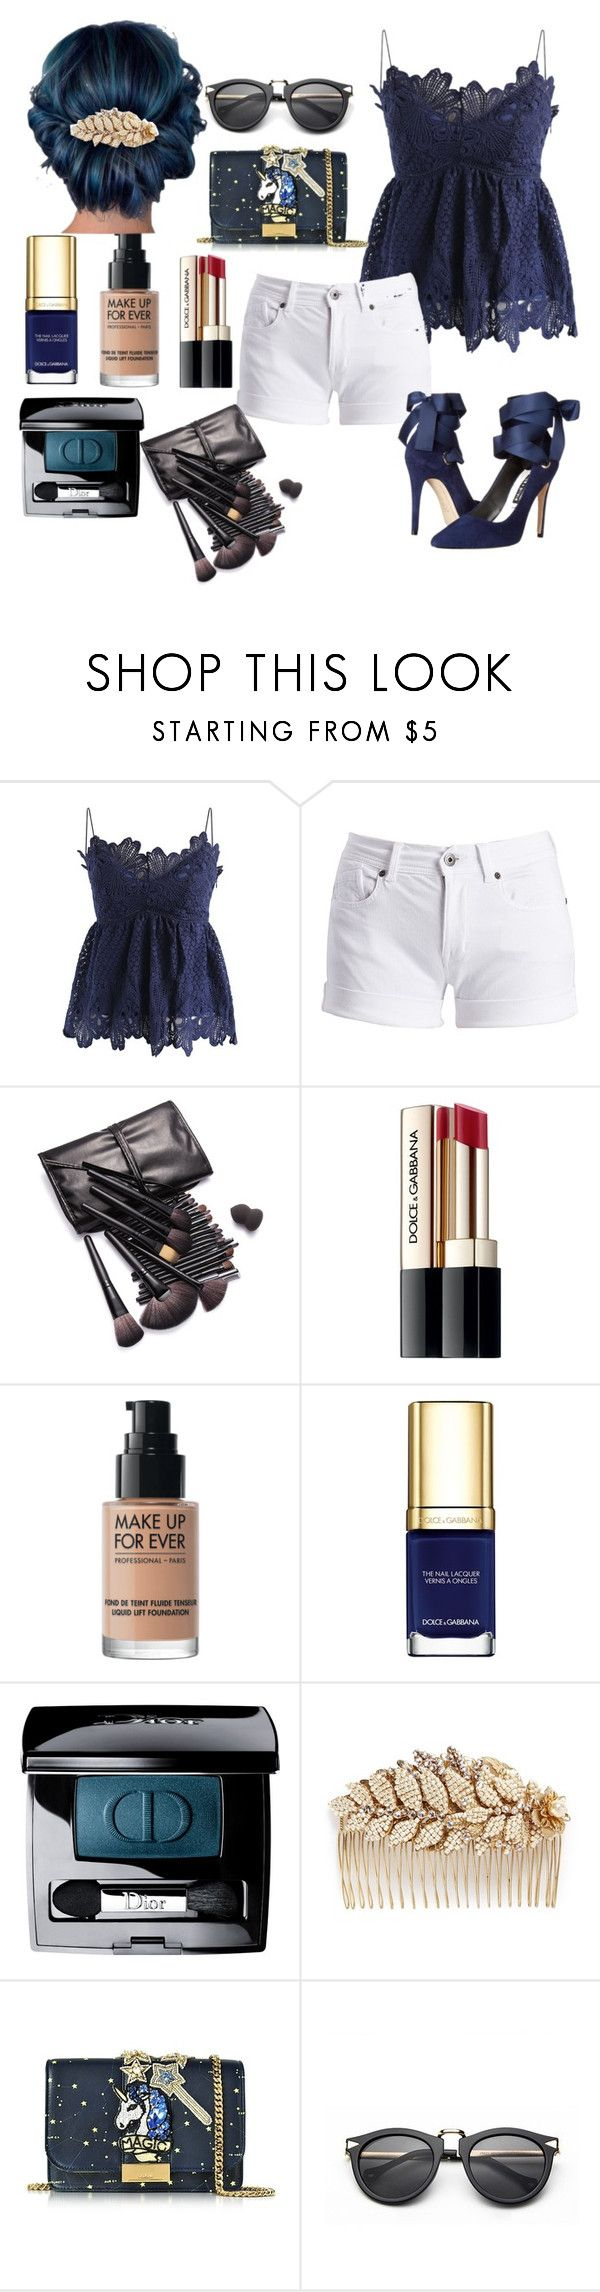 """""""BLUE"""" by jody-glasgow on Polyvore featuring Chicwish, Barbour International, Dolce&Gabbana, MAKE UP FOR EVER, Christian Dior, Miriam Haskell and GEDEBE"""